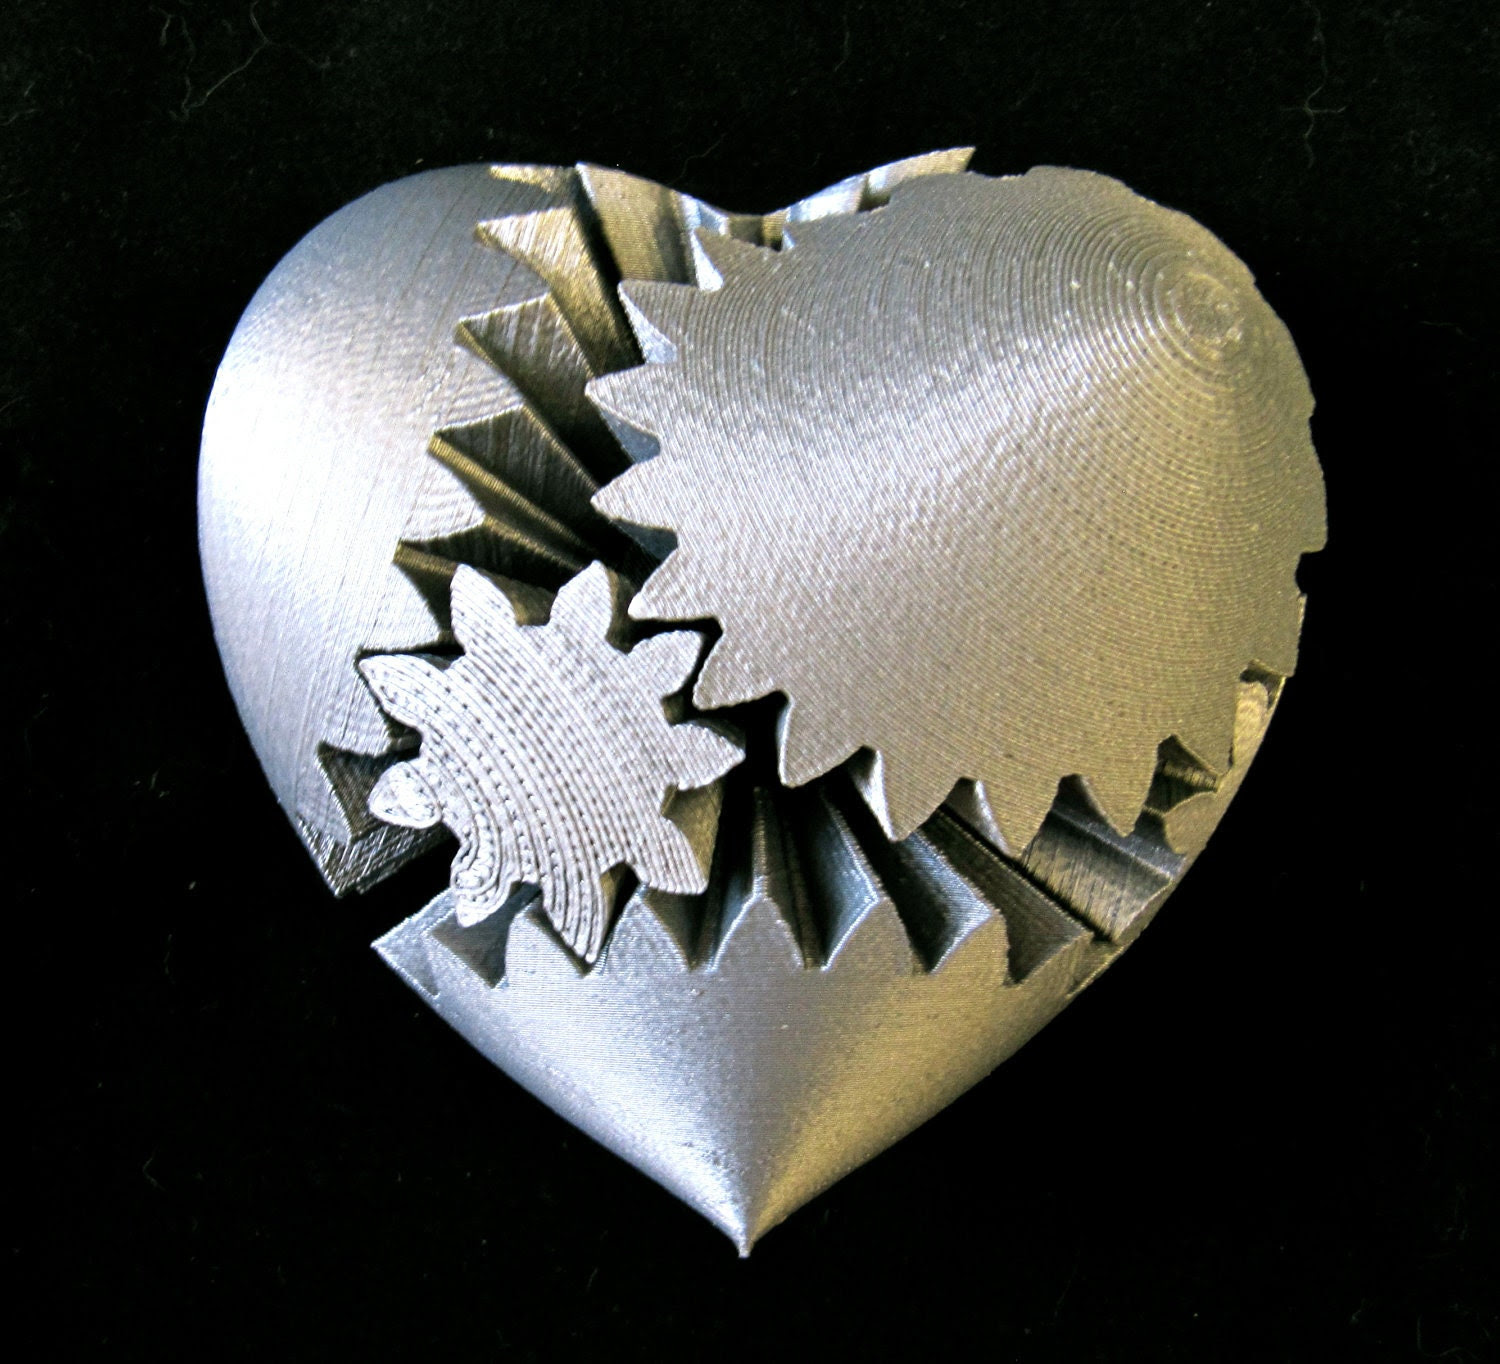 Steampunk Rotating Gear Heart (3D Printed) - CarryTheWhat